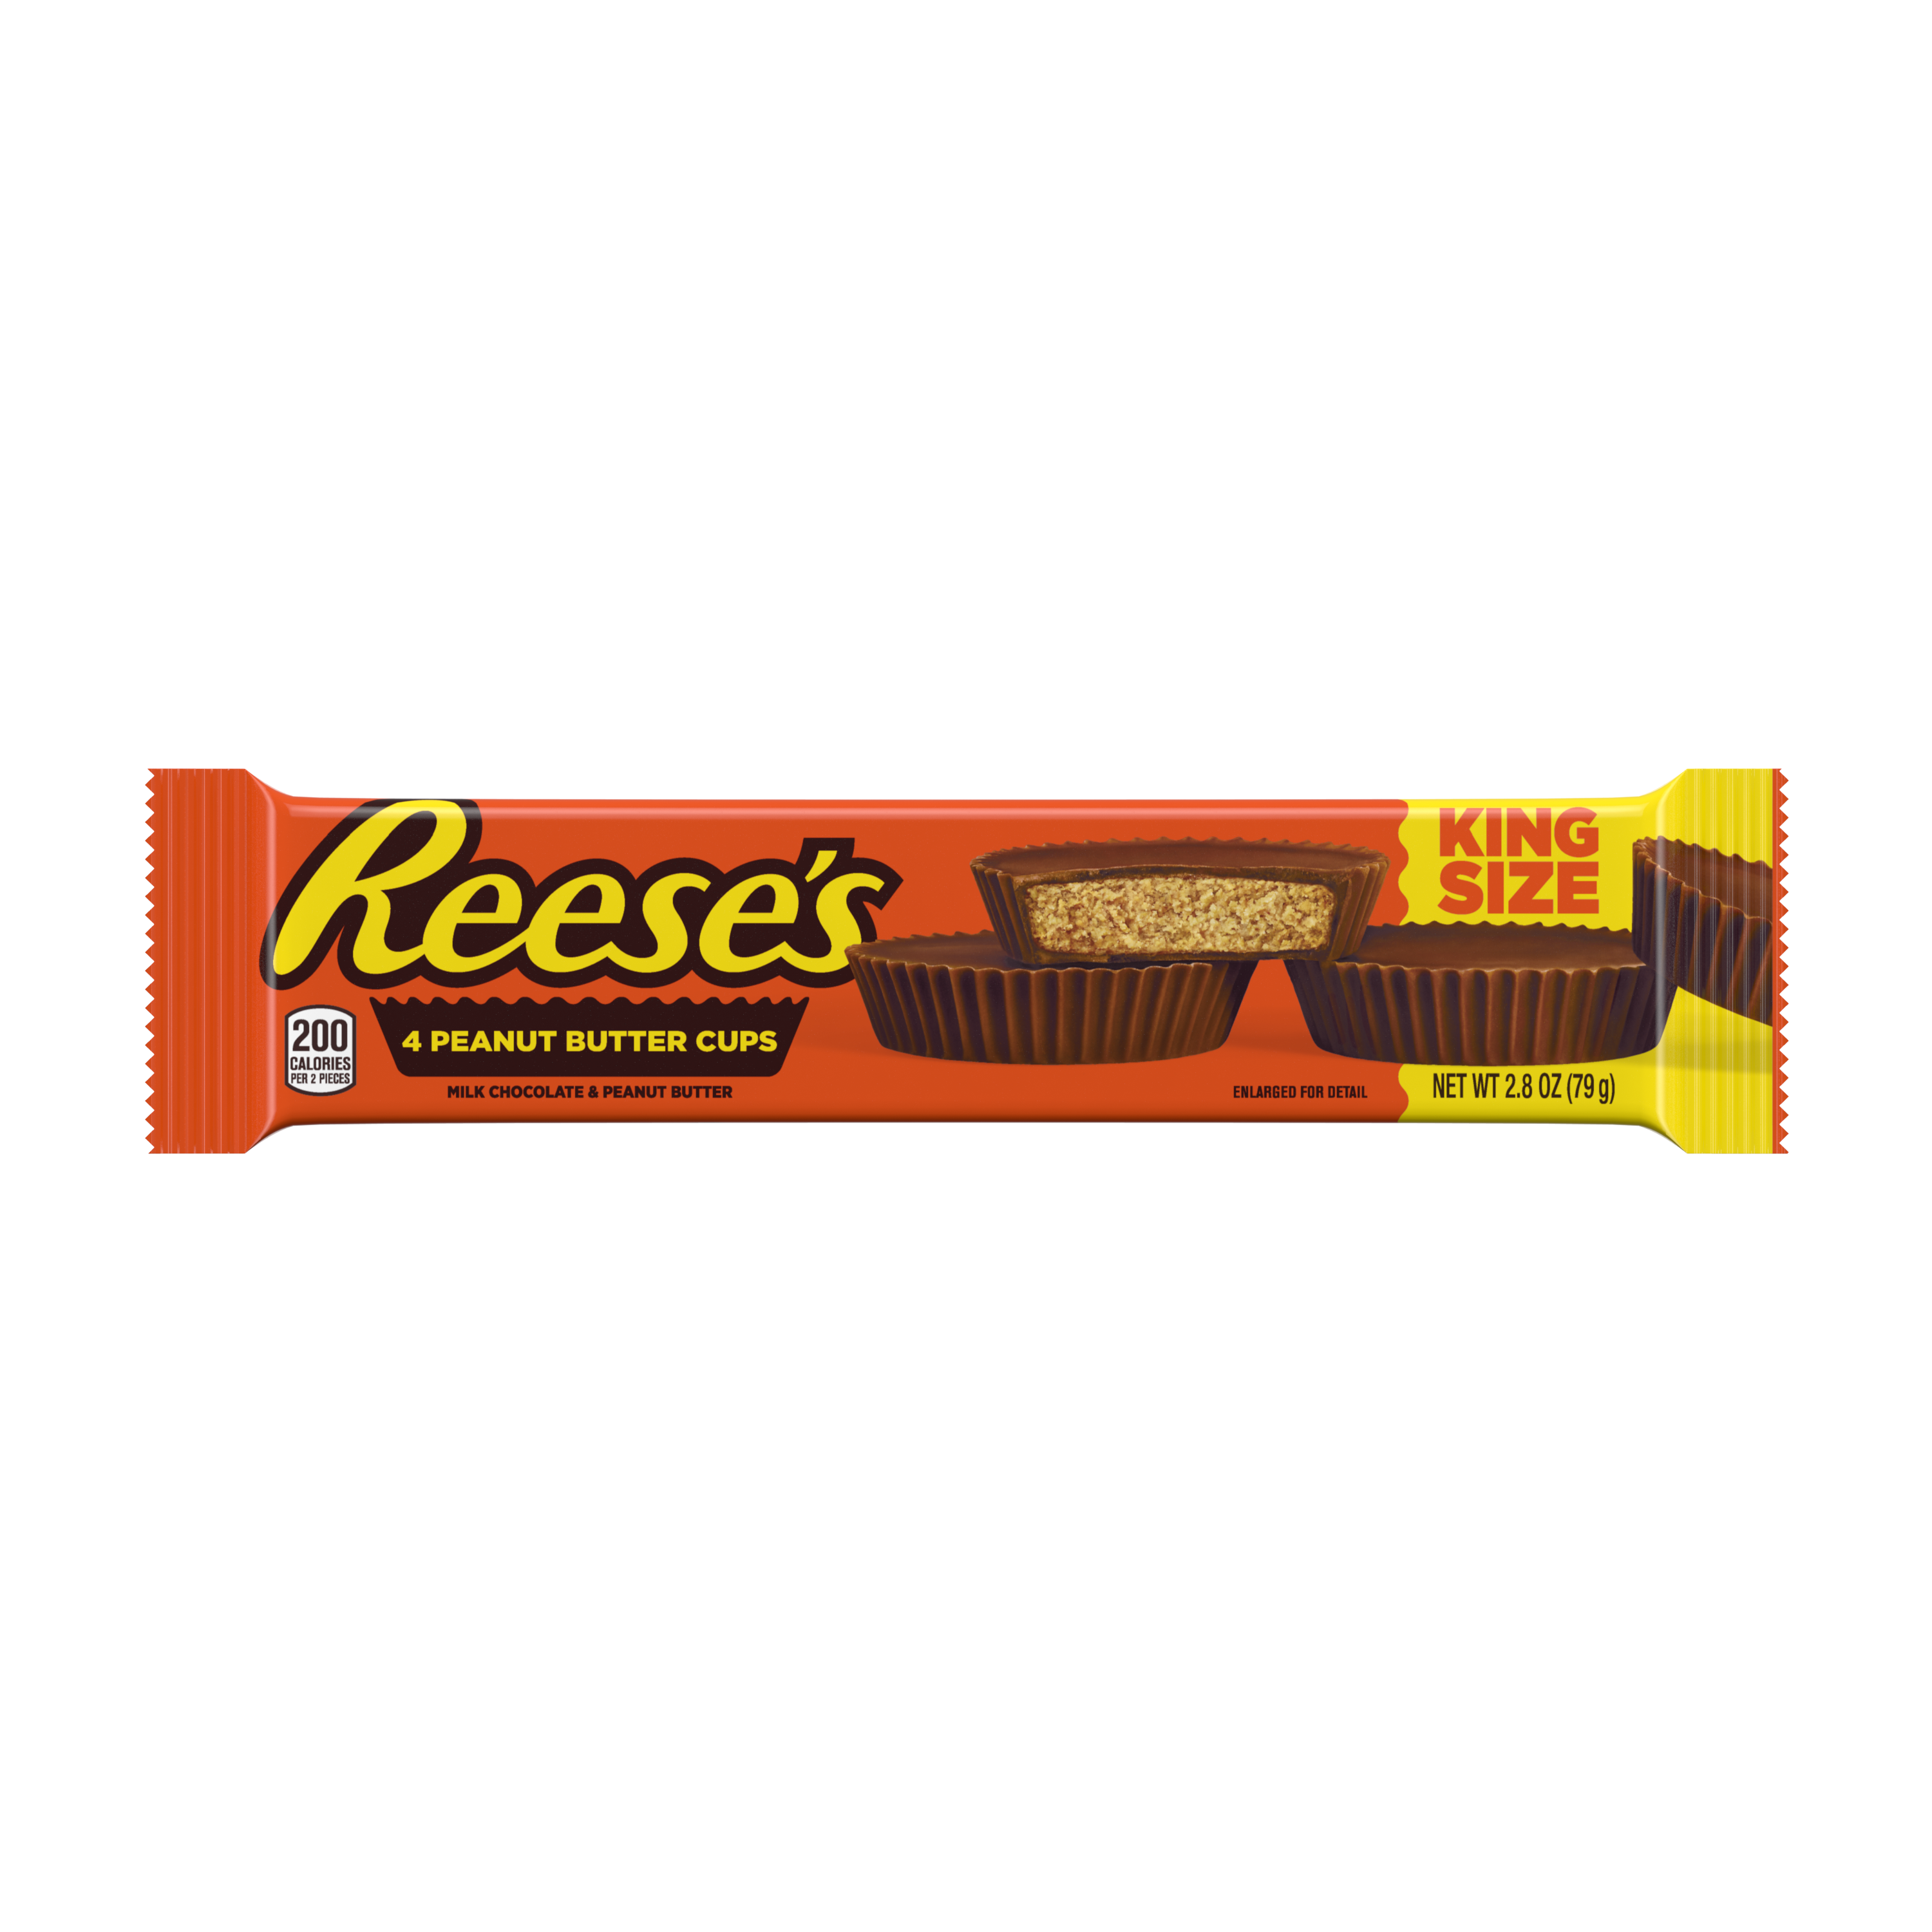 REESE'S Milk Chocolate King Size Peanut Butter Cups, 2.8 oz - Front of Package